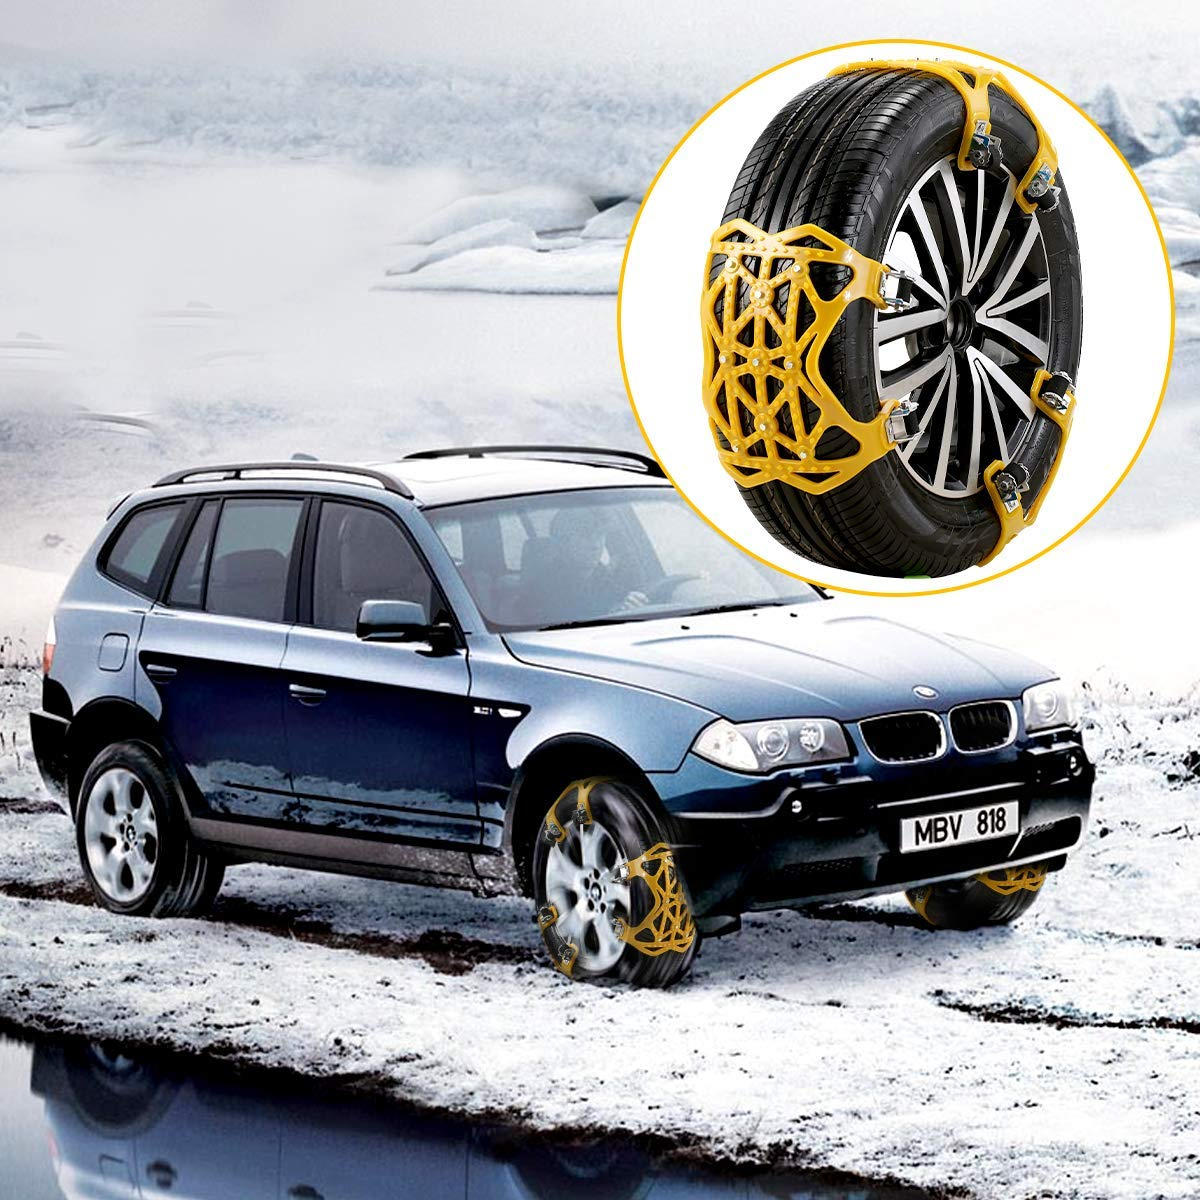 6 Packs, M1 Snow Road Sand Road 165mm-265mm Osaloe Universal Snow Chains Car Snow Chains Anti-skid Chains for Car Truck SUV in Winter Driving